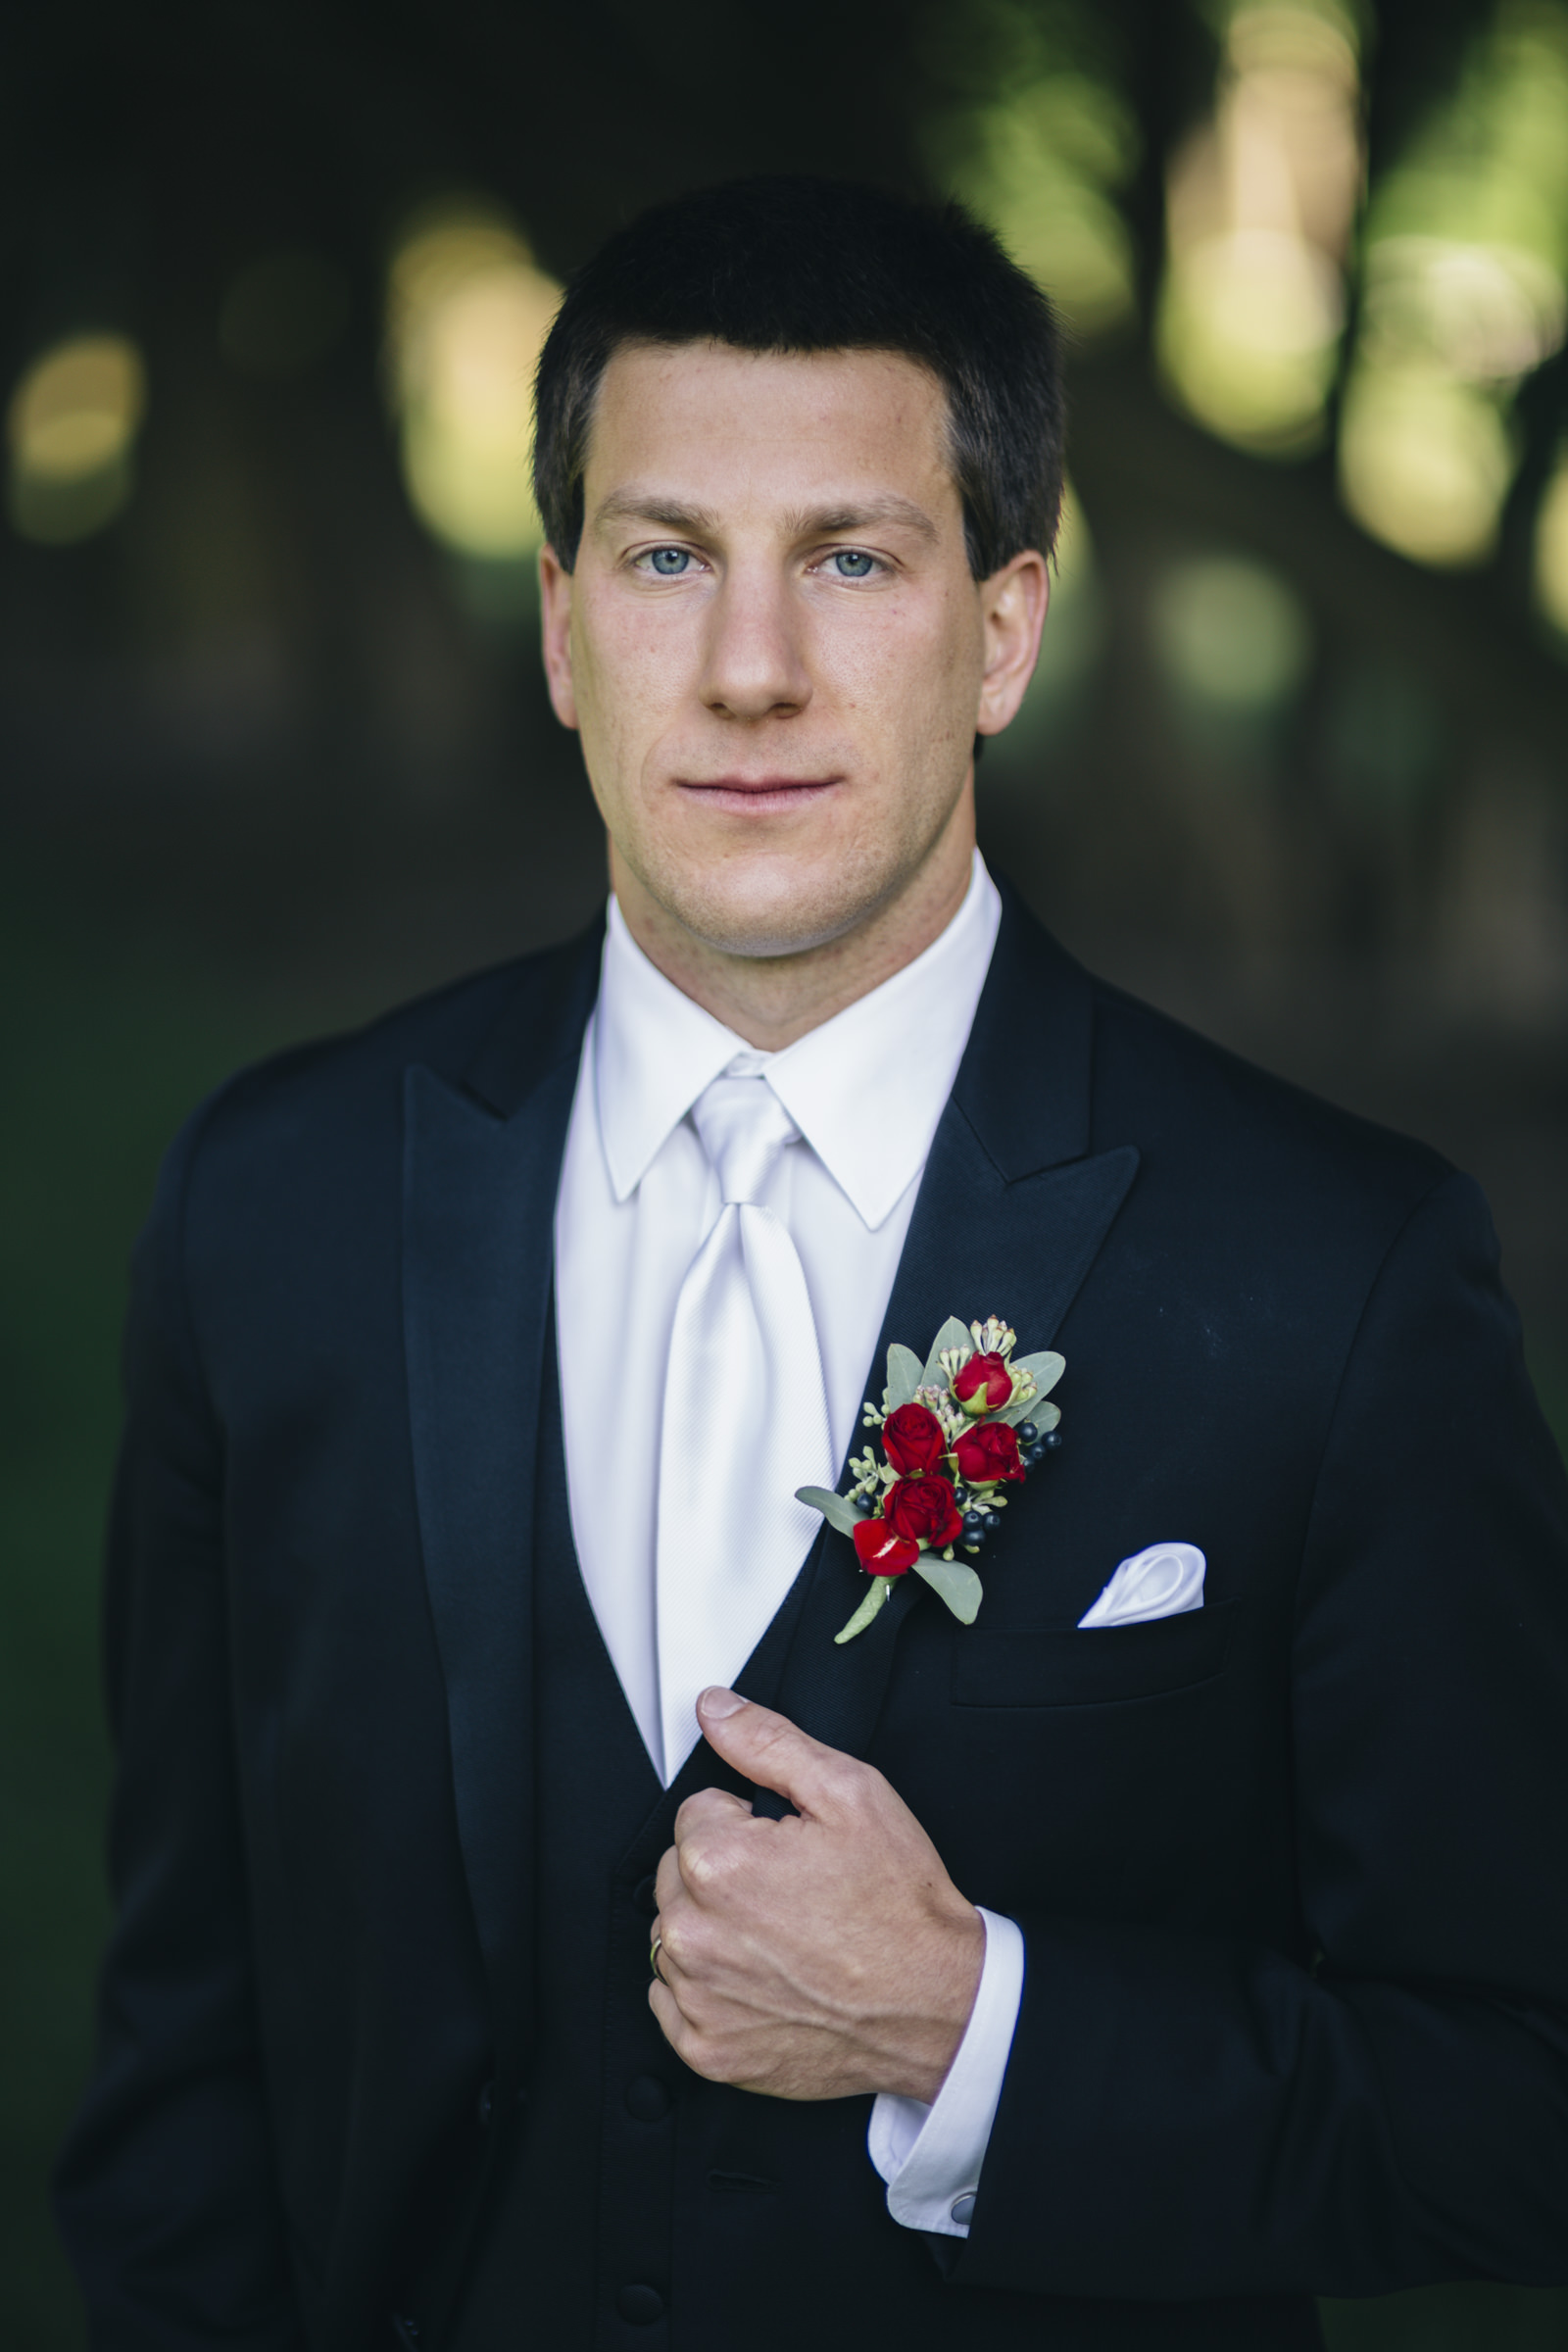 Portrait of the groom before wedding reception at Nazareth Hall